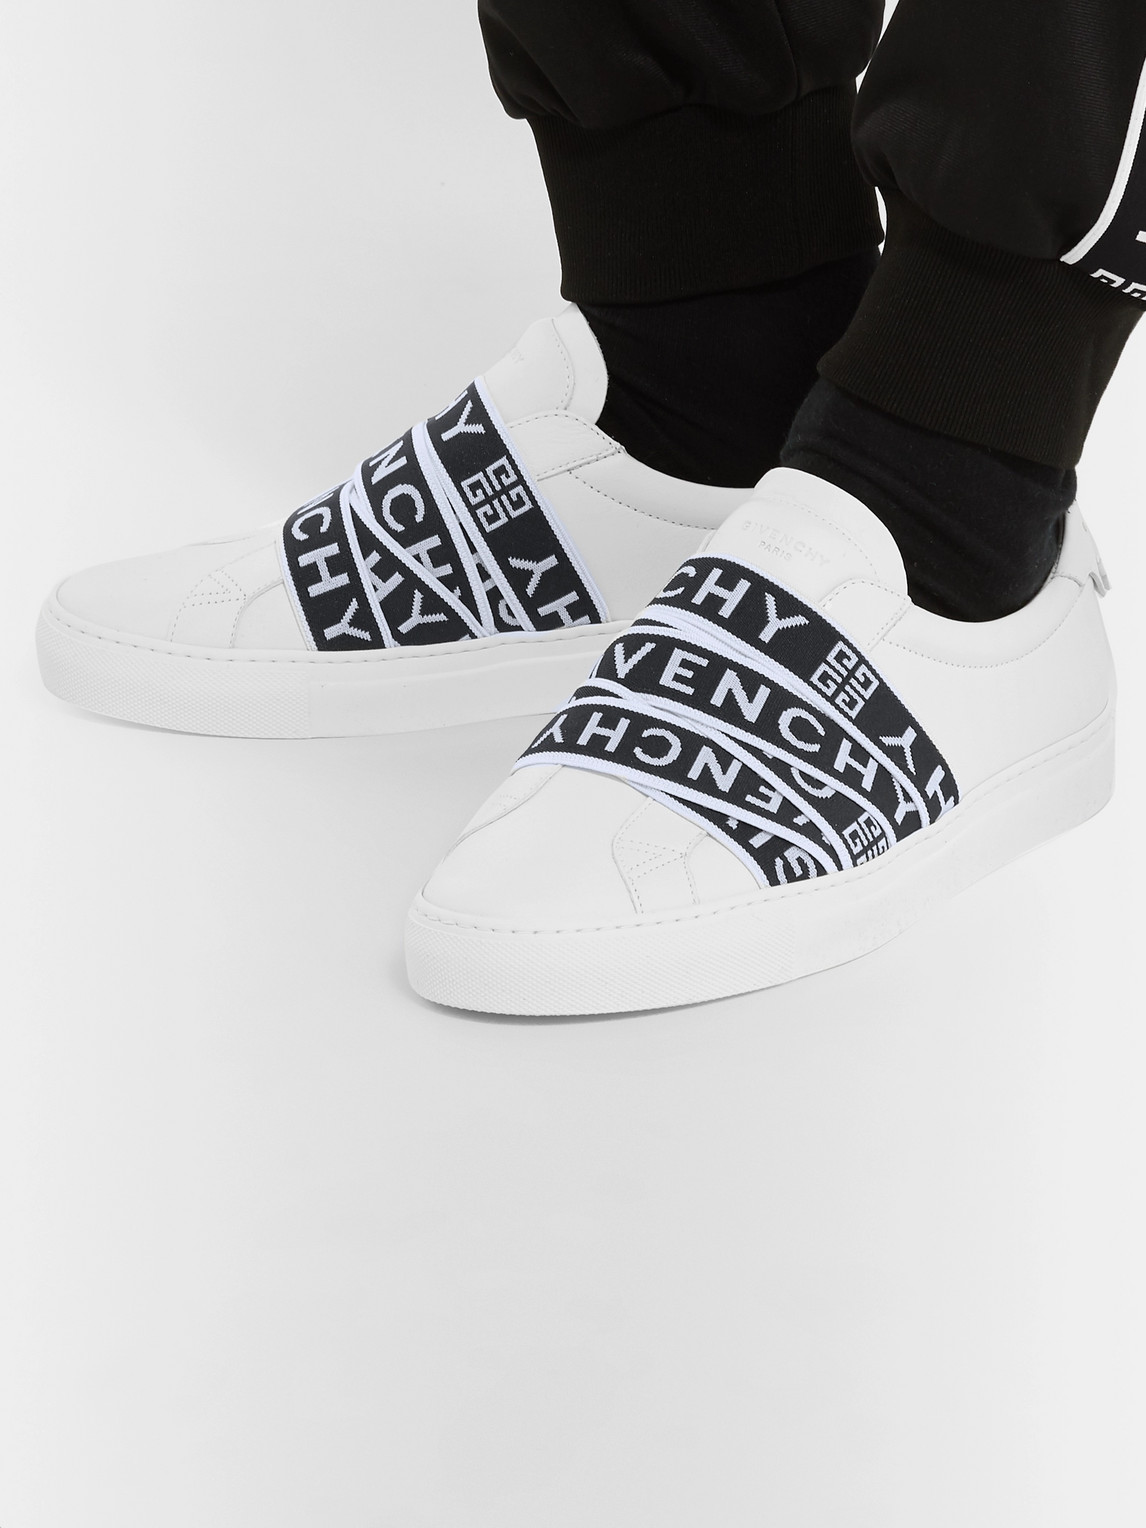 Givenchy Sneakers URBAN STREET LOGO-JACQUARD LEATHER SLIP-ON SNEAKERS